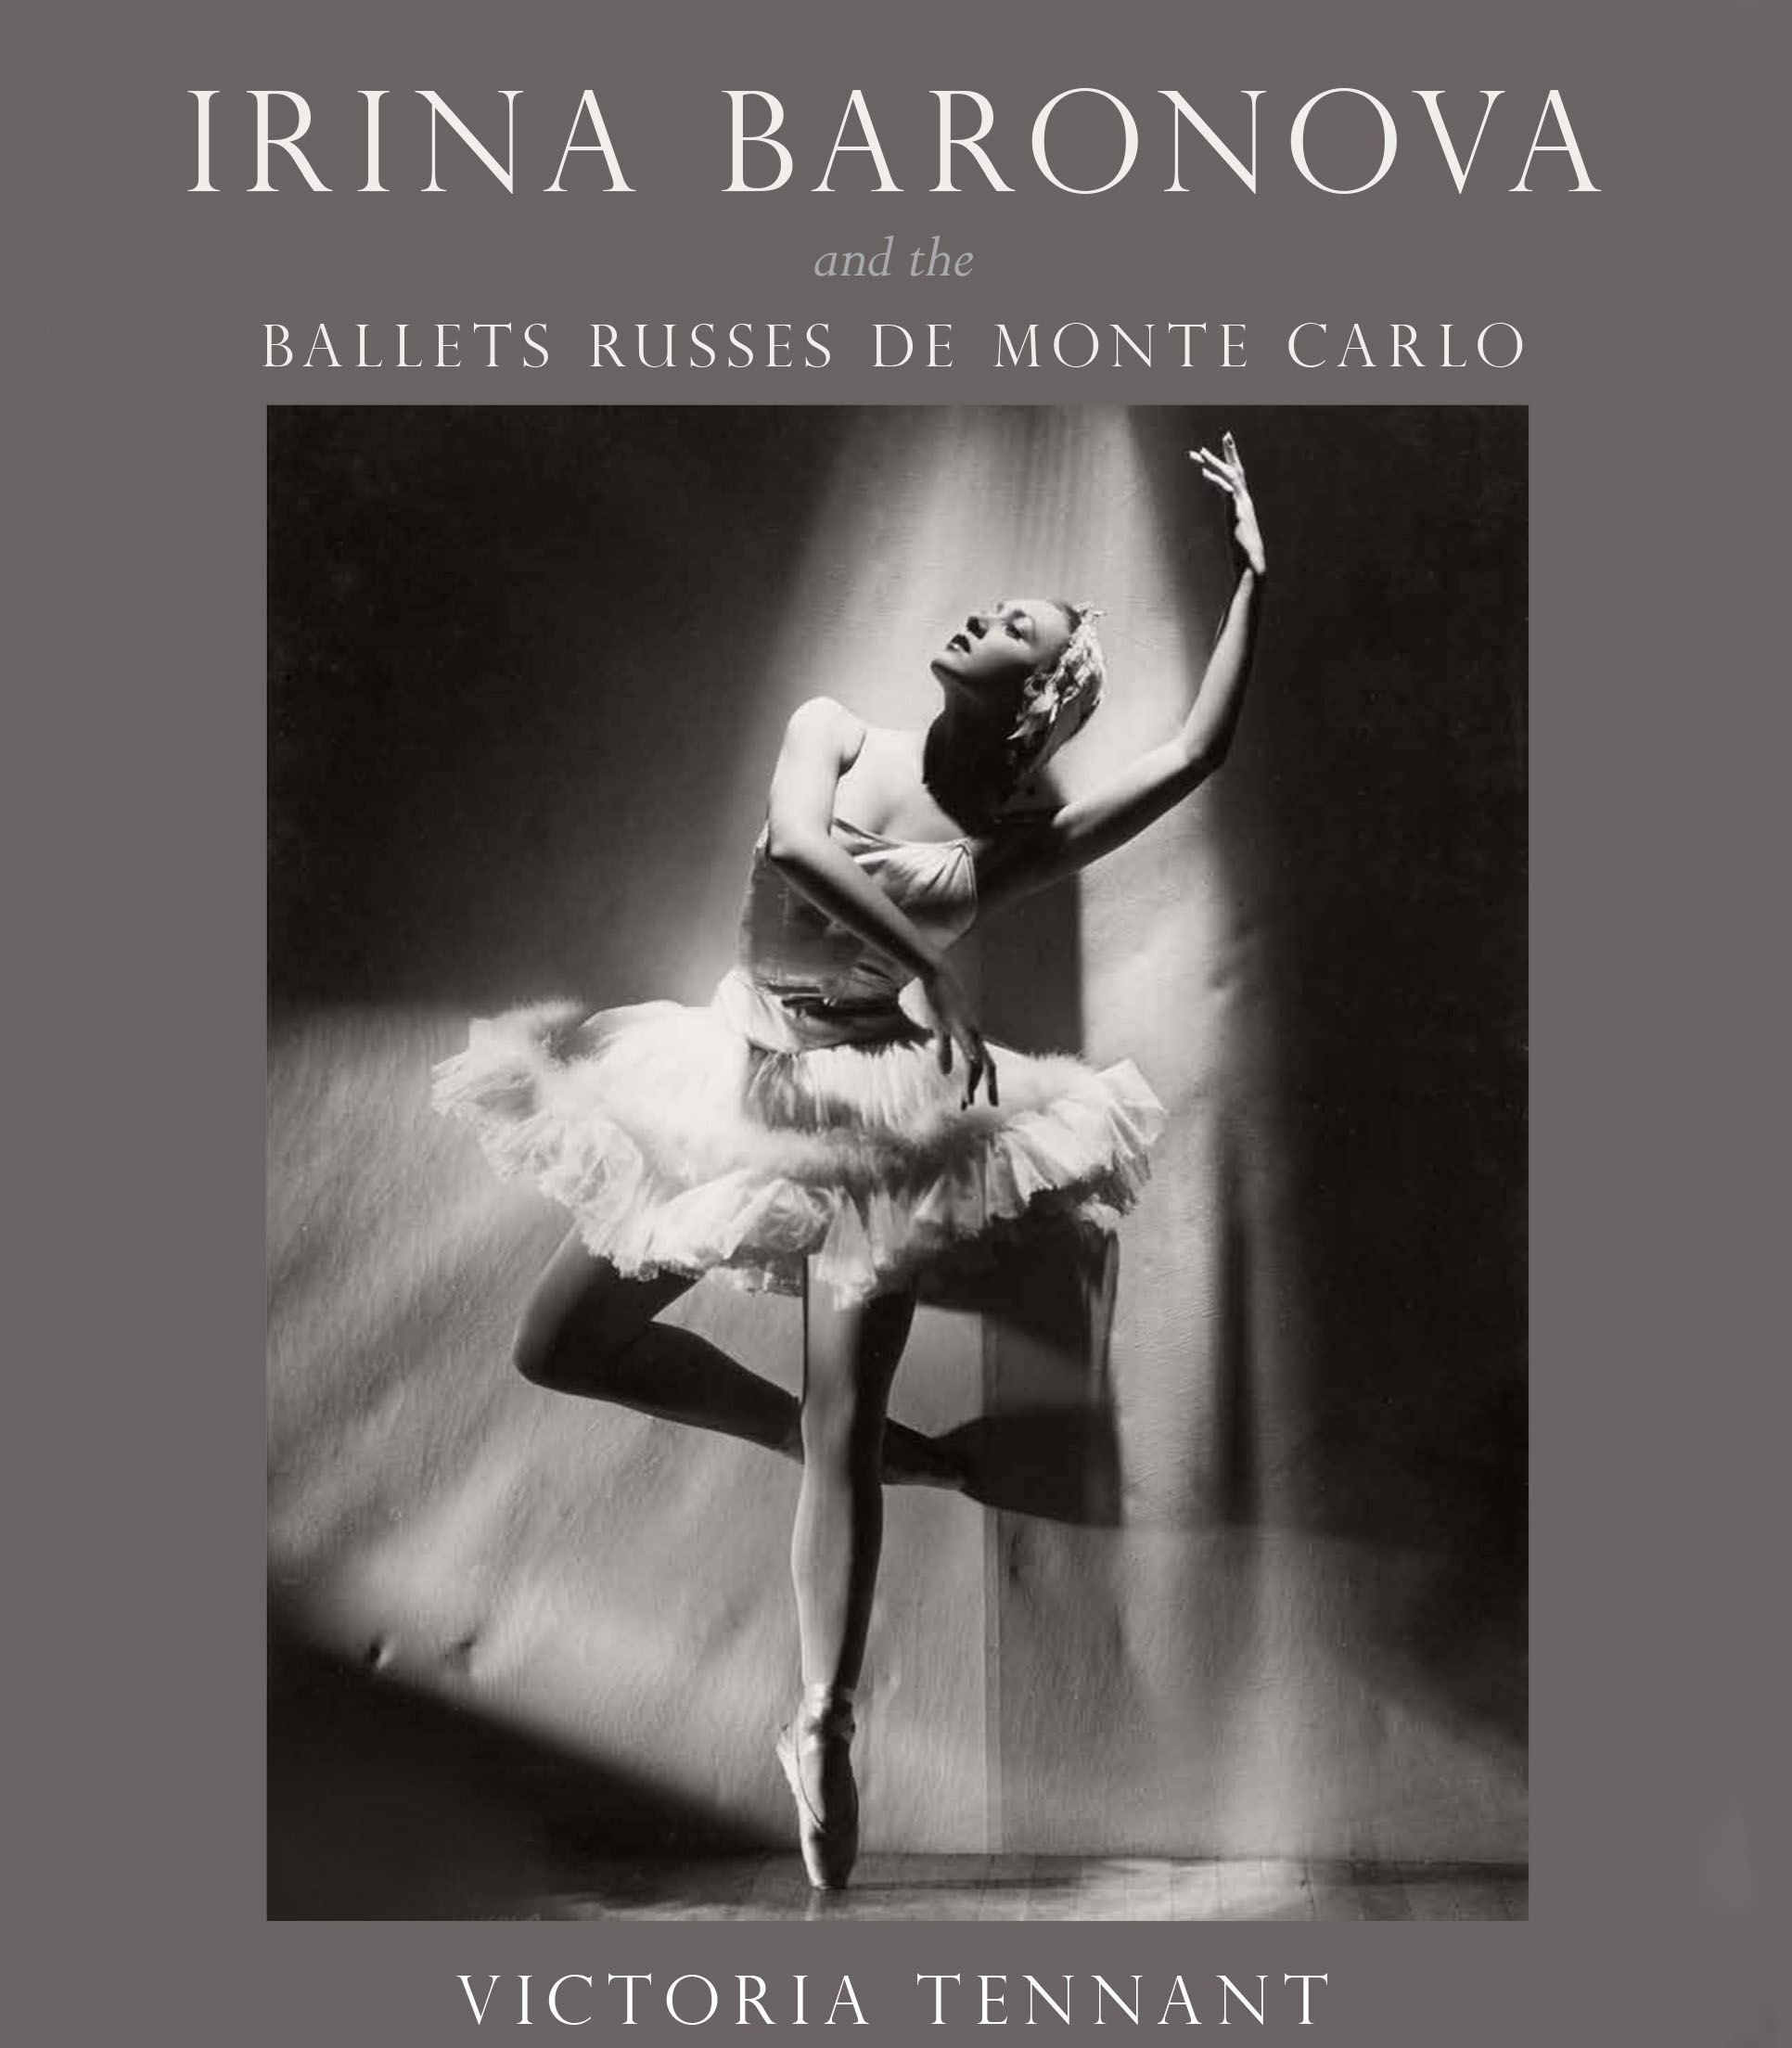 Exhibition Lecture: Irina Baronova and the Ballets Russes de Monte Carlo